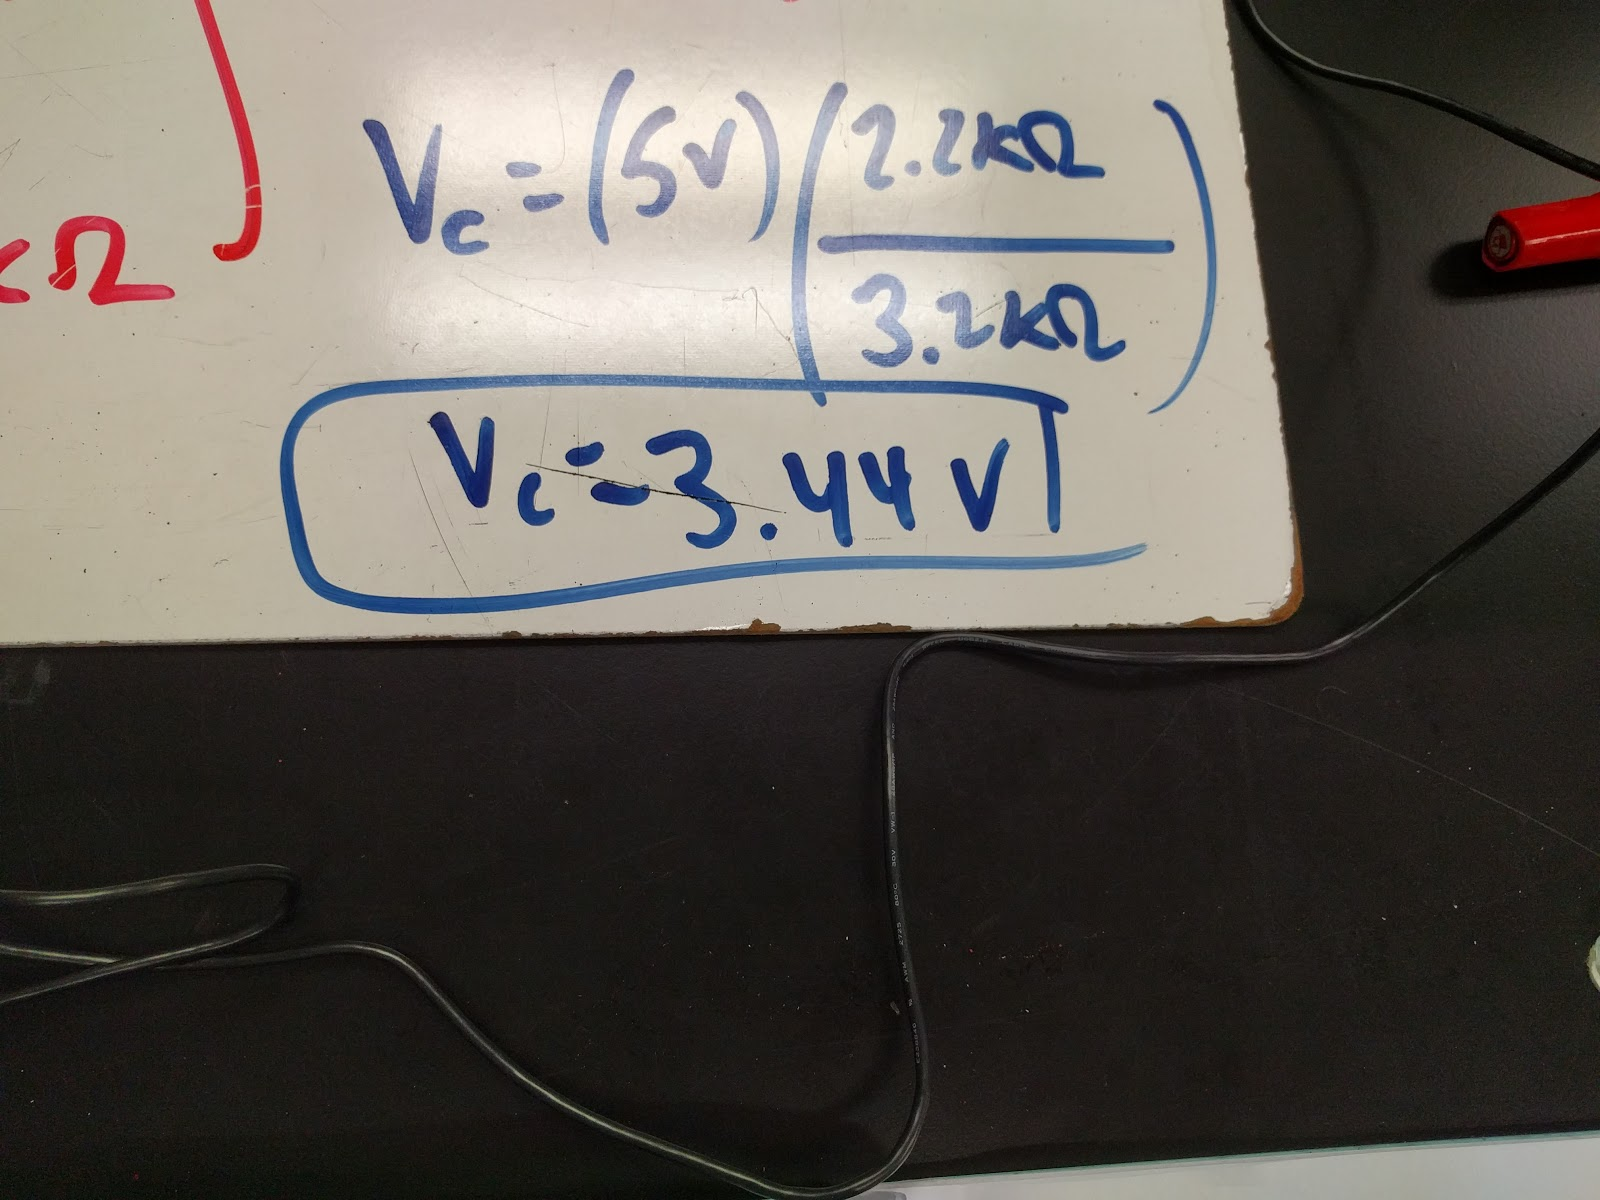 Engineering 44 Hynassman 4 14 16 Day Inductors In Series And Find The Thvenin Equivalent Circuit With Respect To Capacitor This Was Done By Finding Thevenin Resistance Then Mutiplying It Capacitance Of Time Constant Found Be About 15 Ms